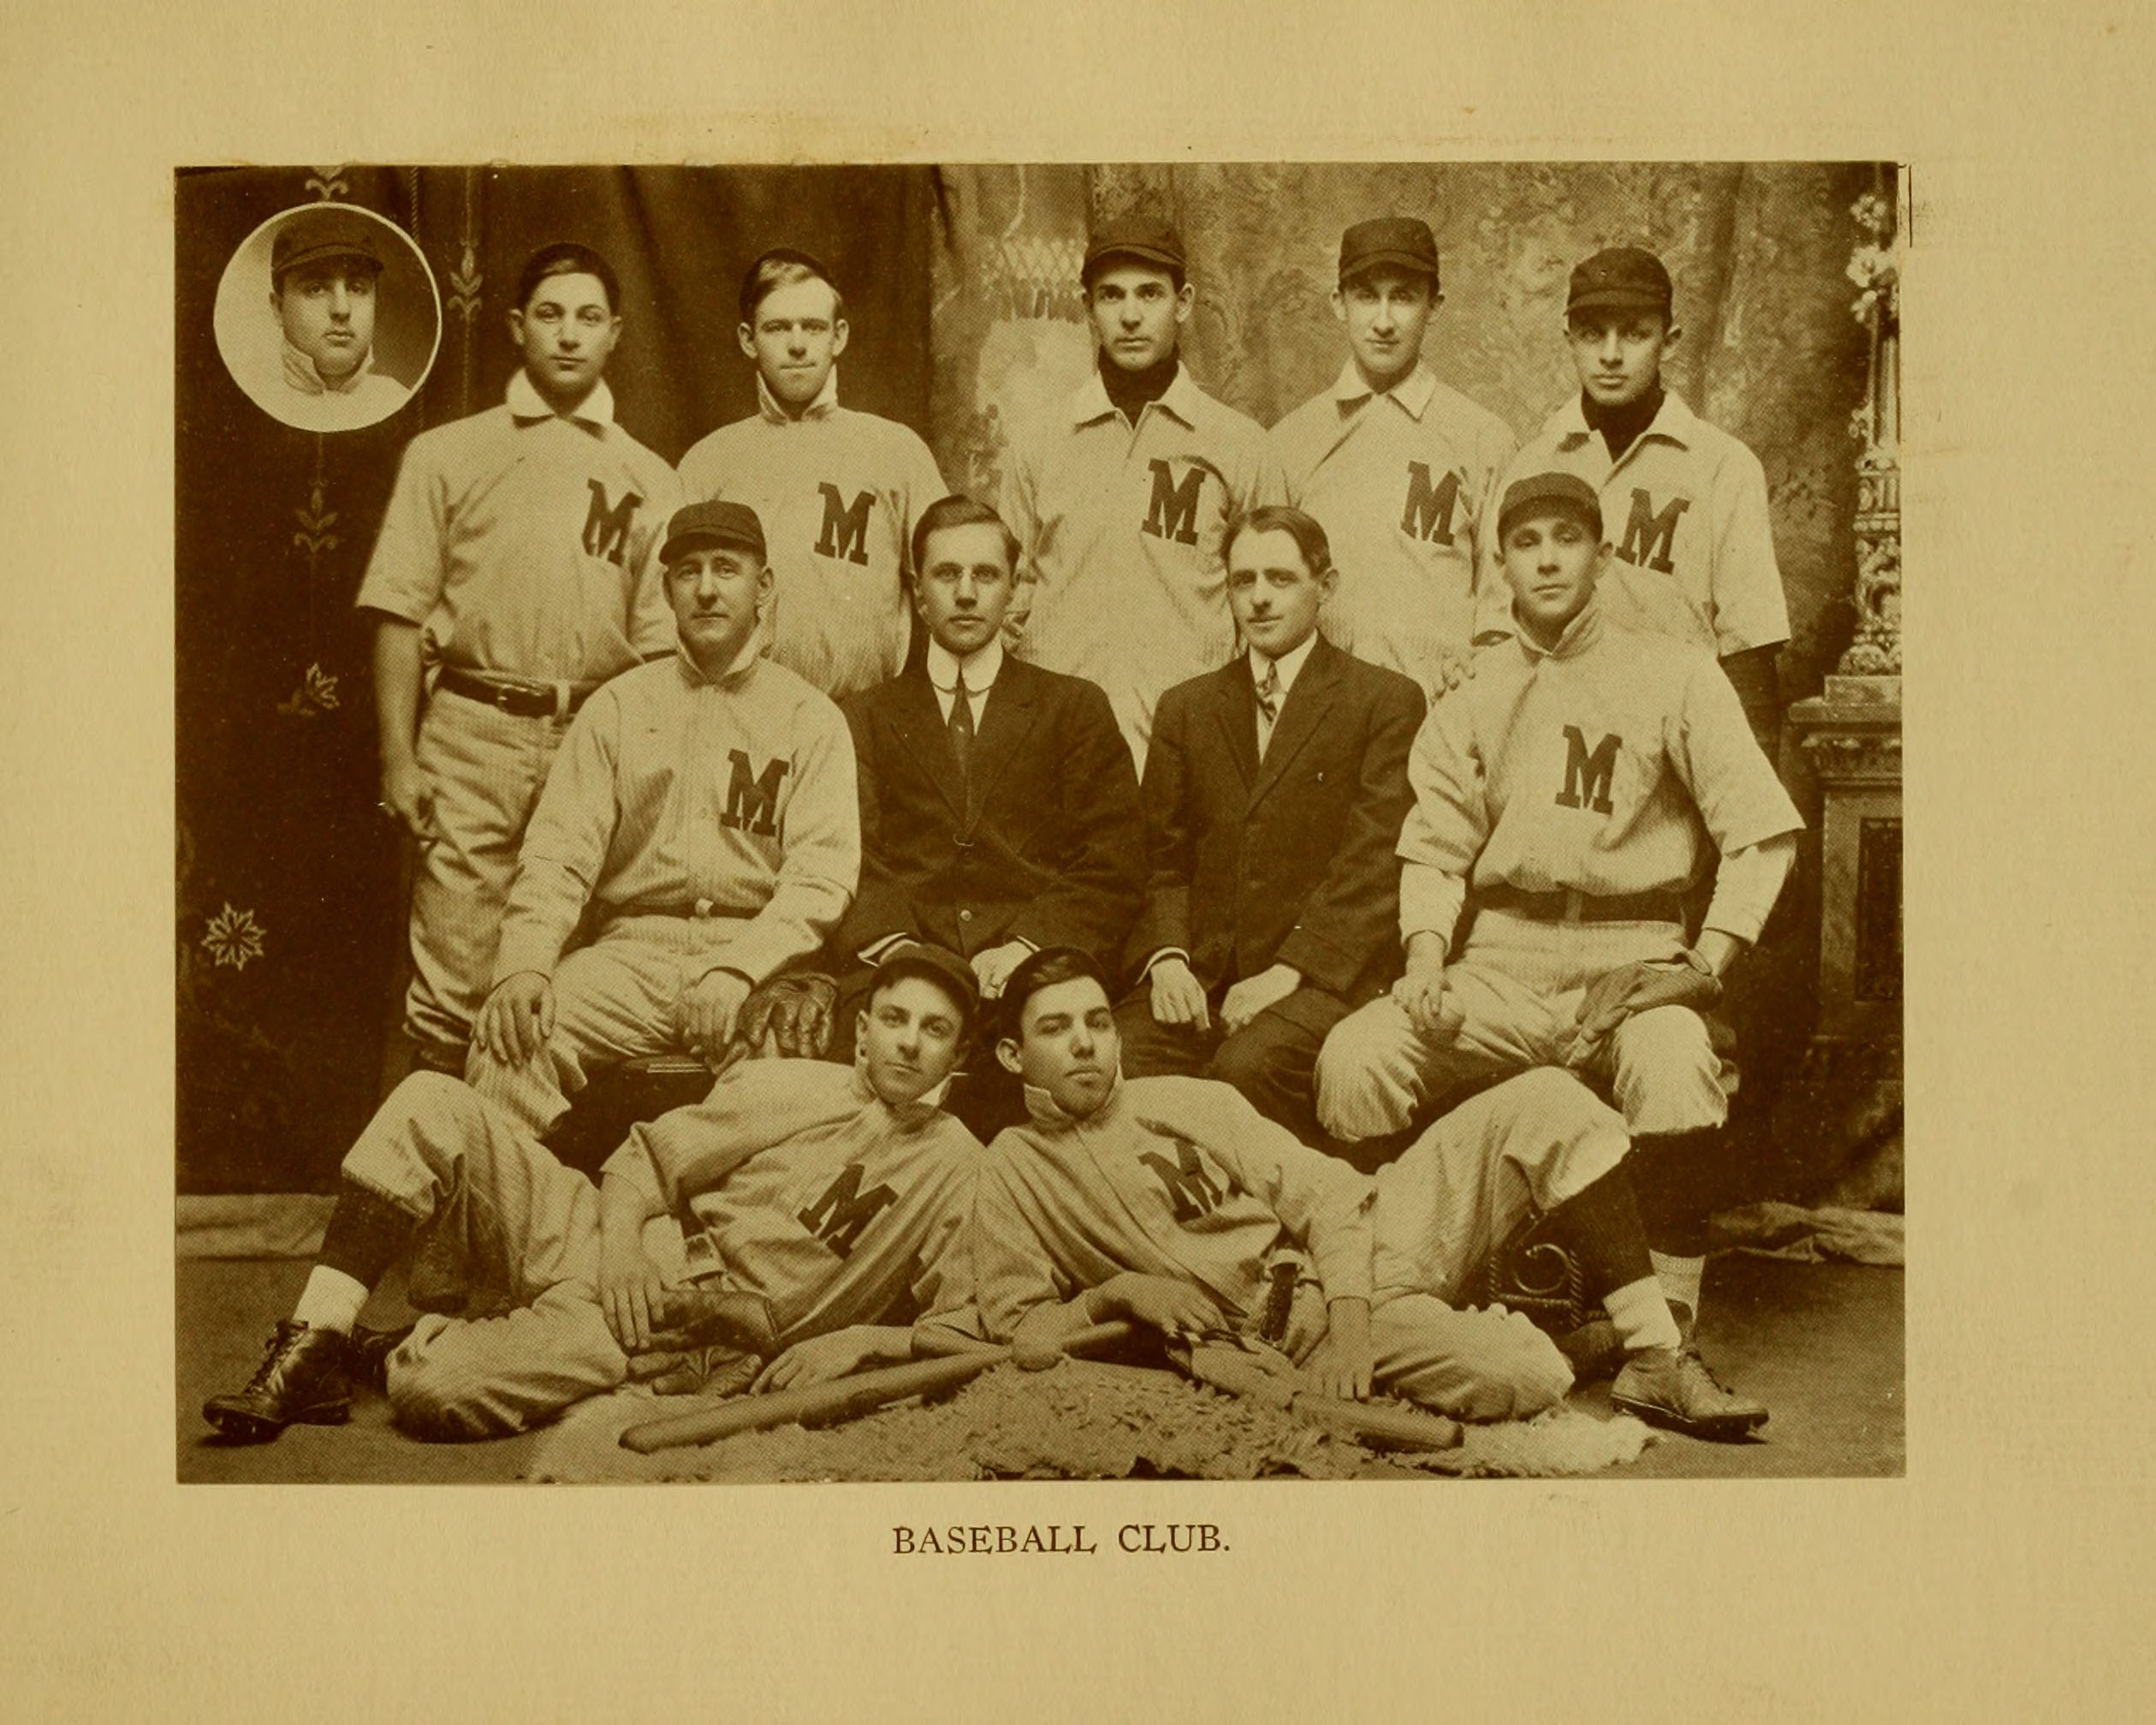 Black and white photograph of a group of men in baseball gear.